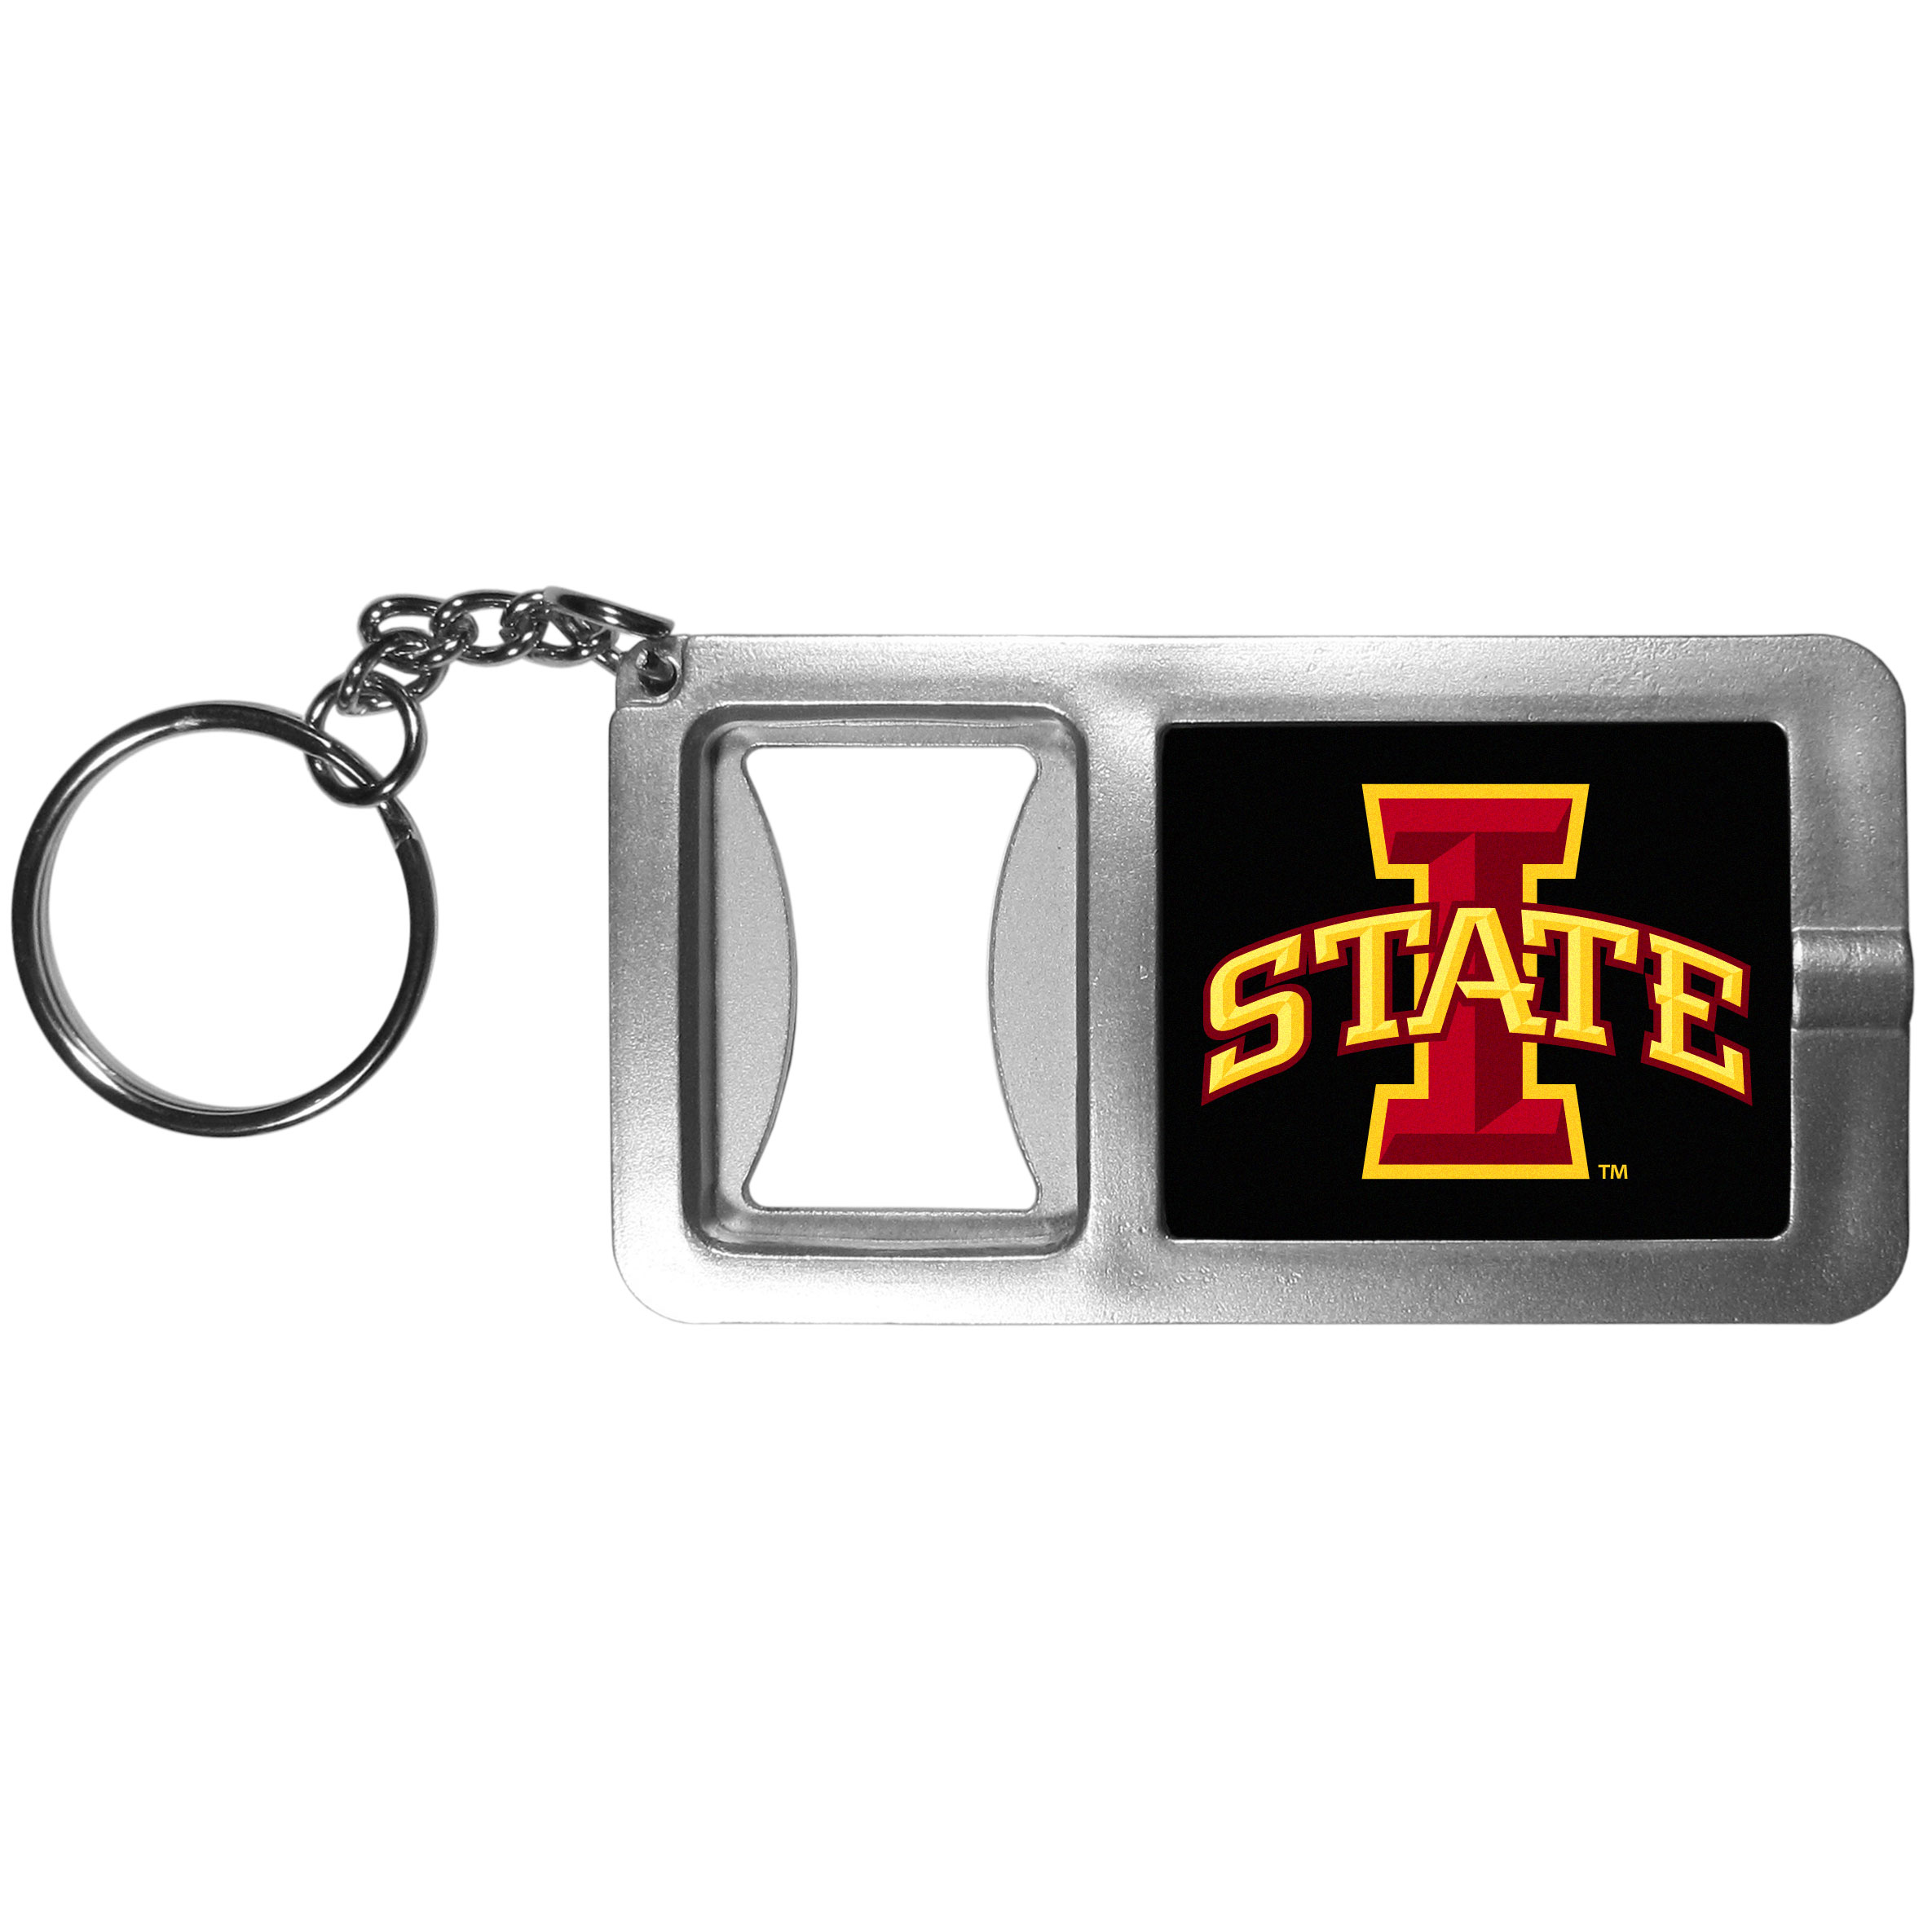 Iowa St. Cyclones Flashlight Key Chain with Bottle Opener